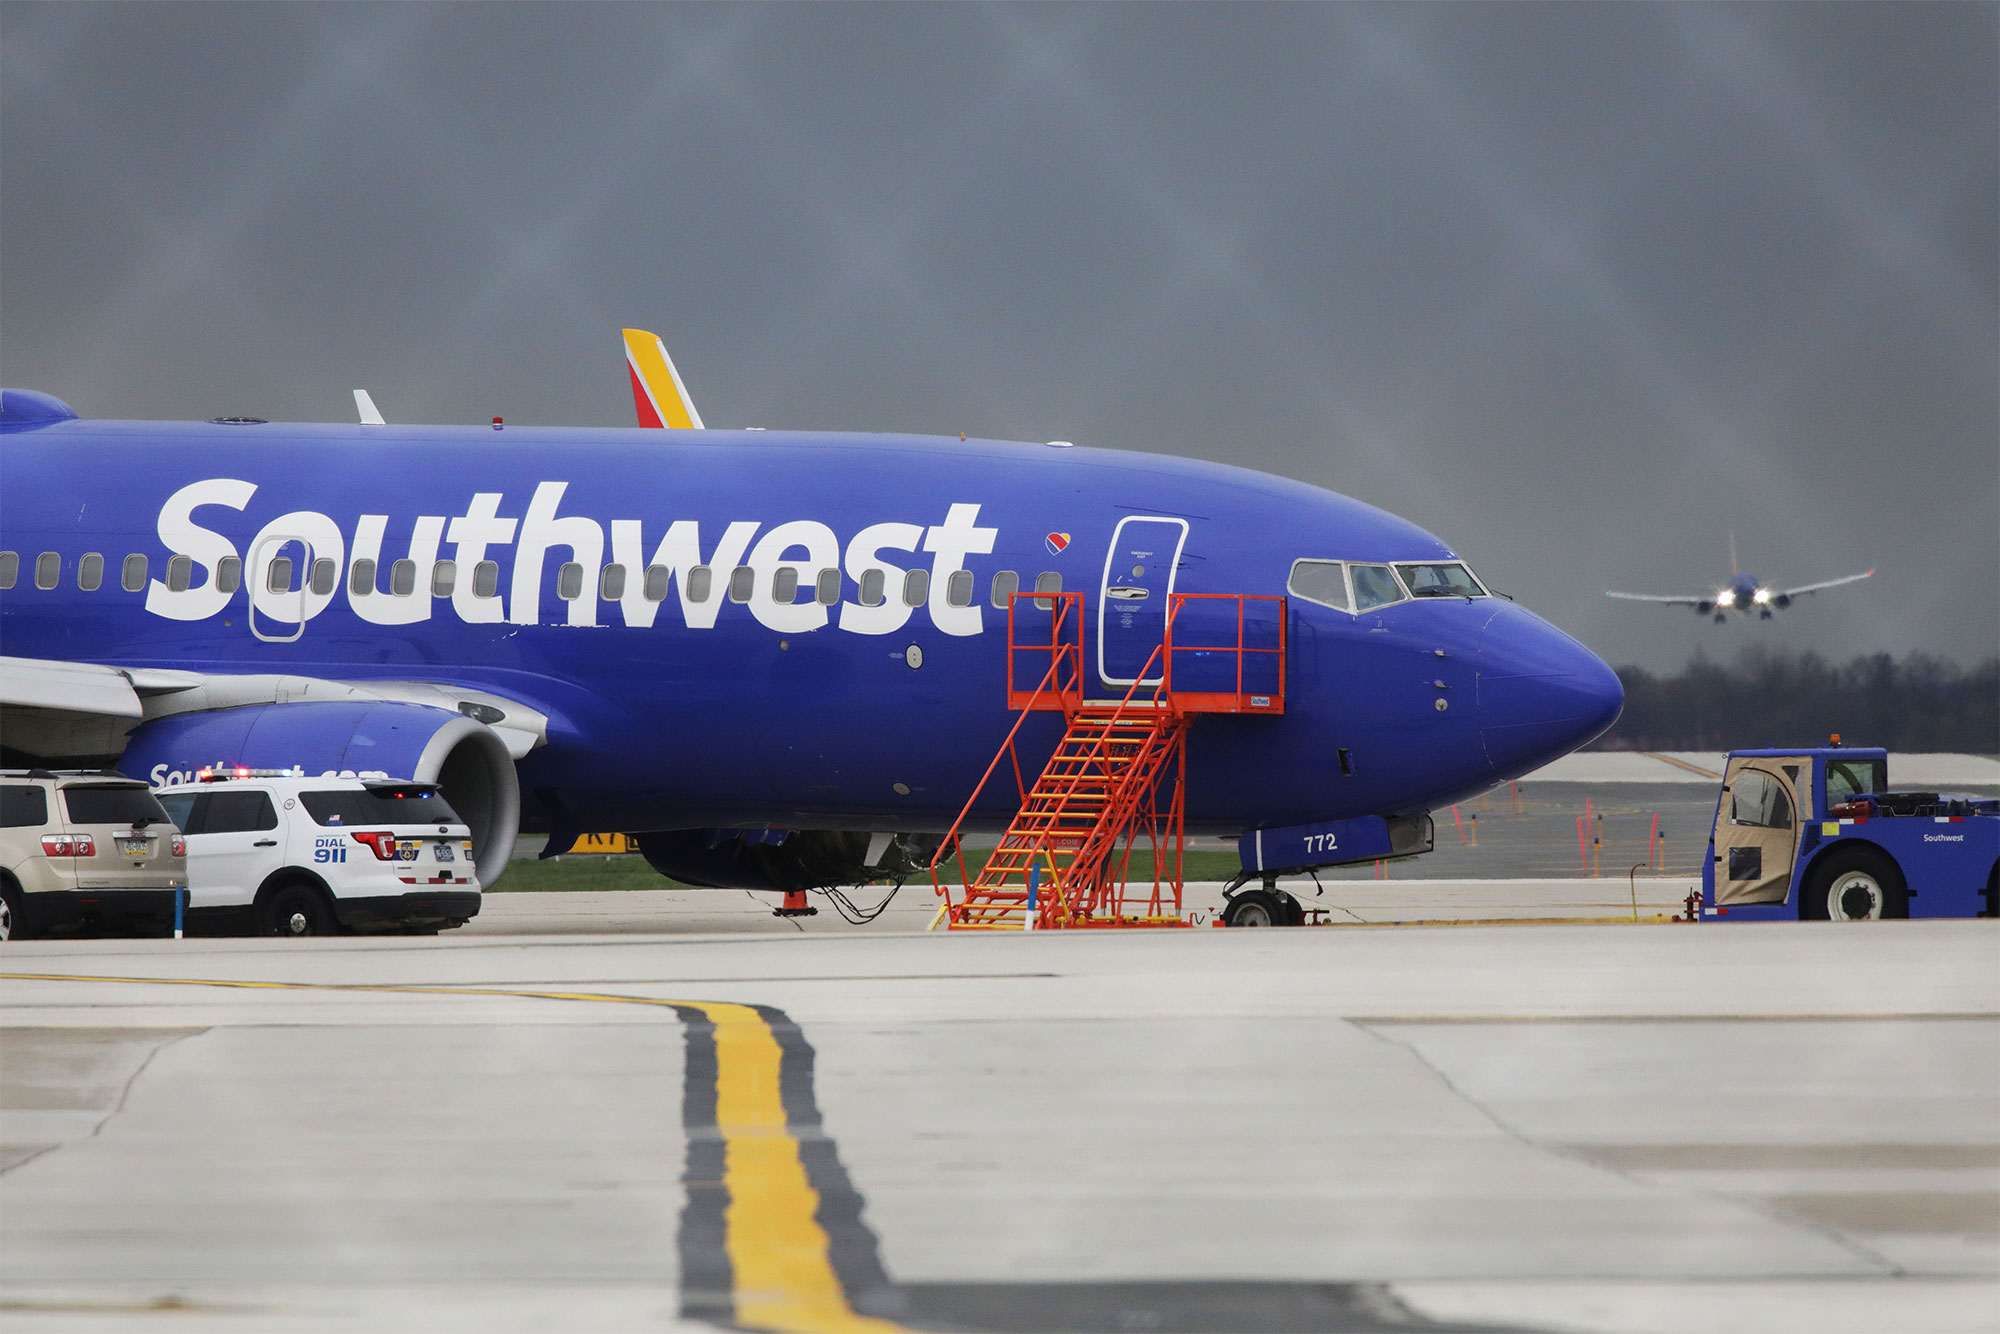 Southwest Flies Bridesmaid's Dress for Sister's Wedding to Costa Rica After She Forgot it At Home